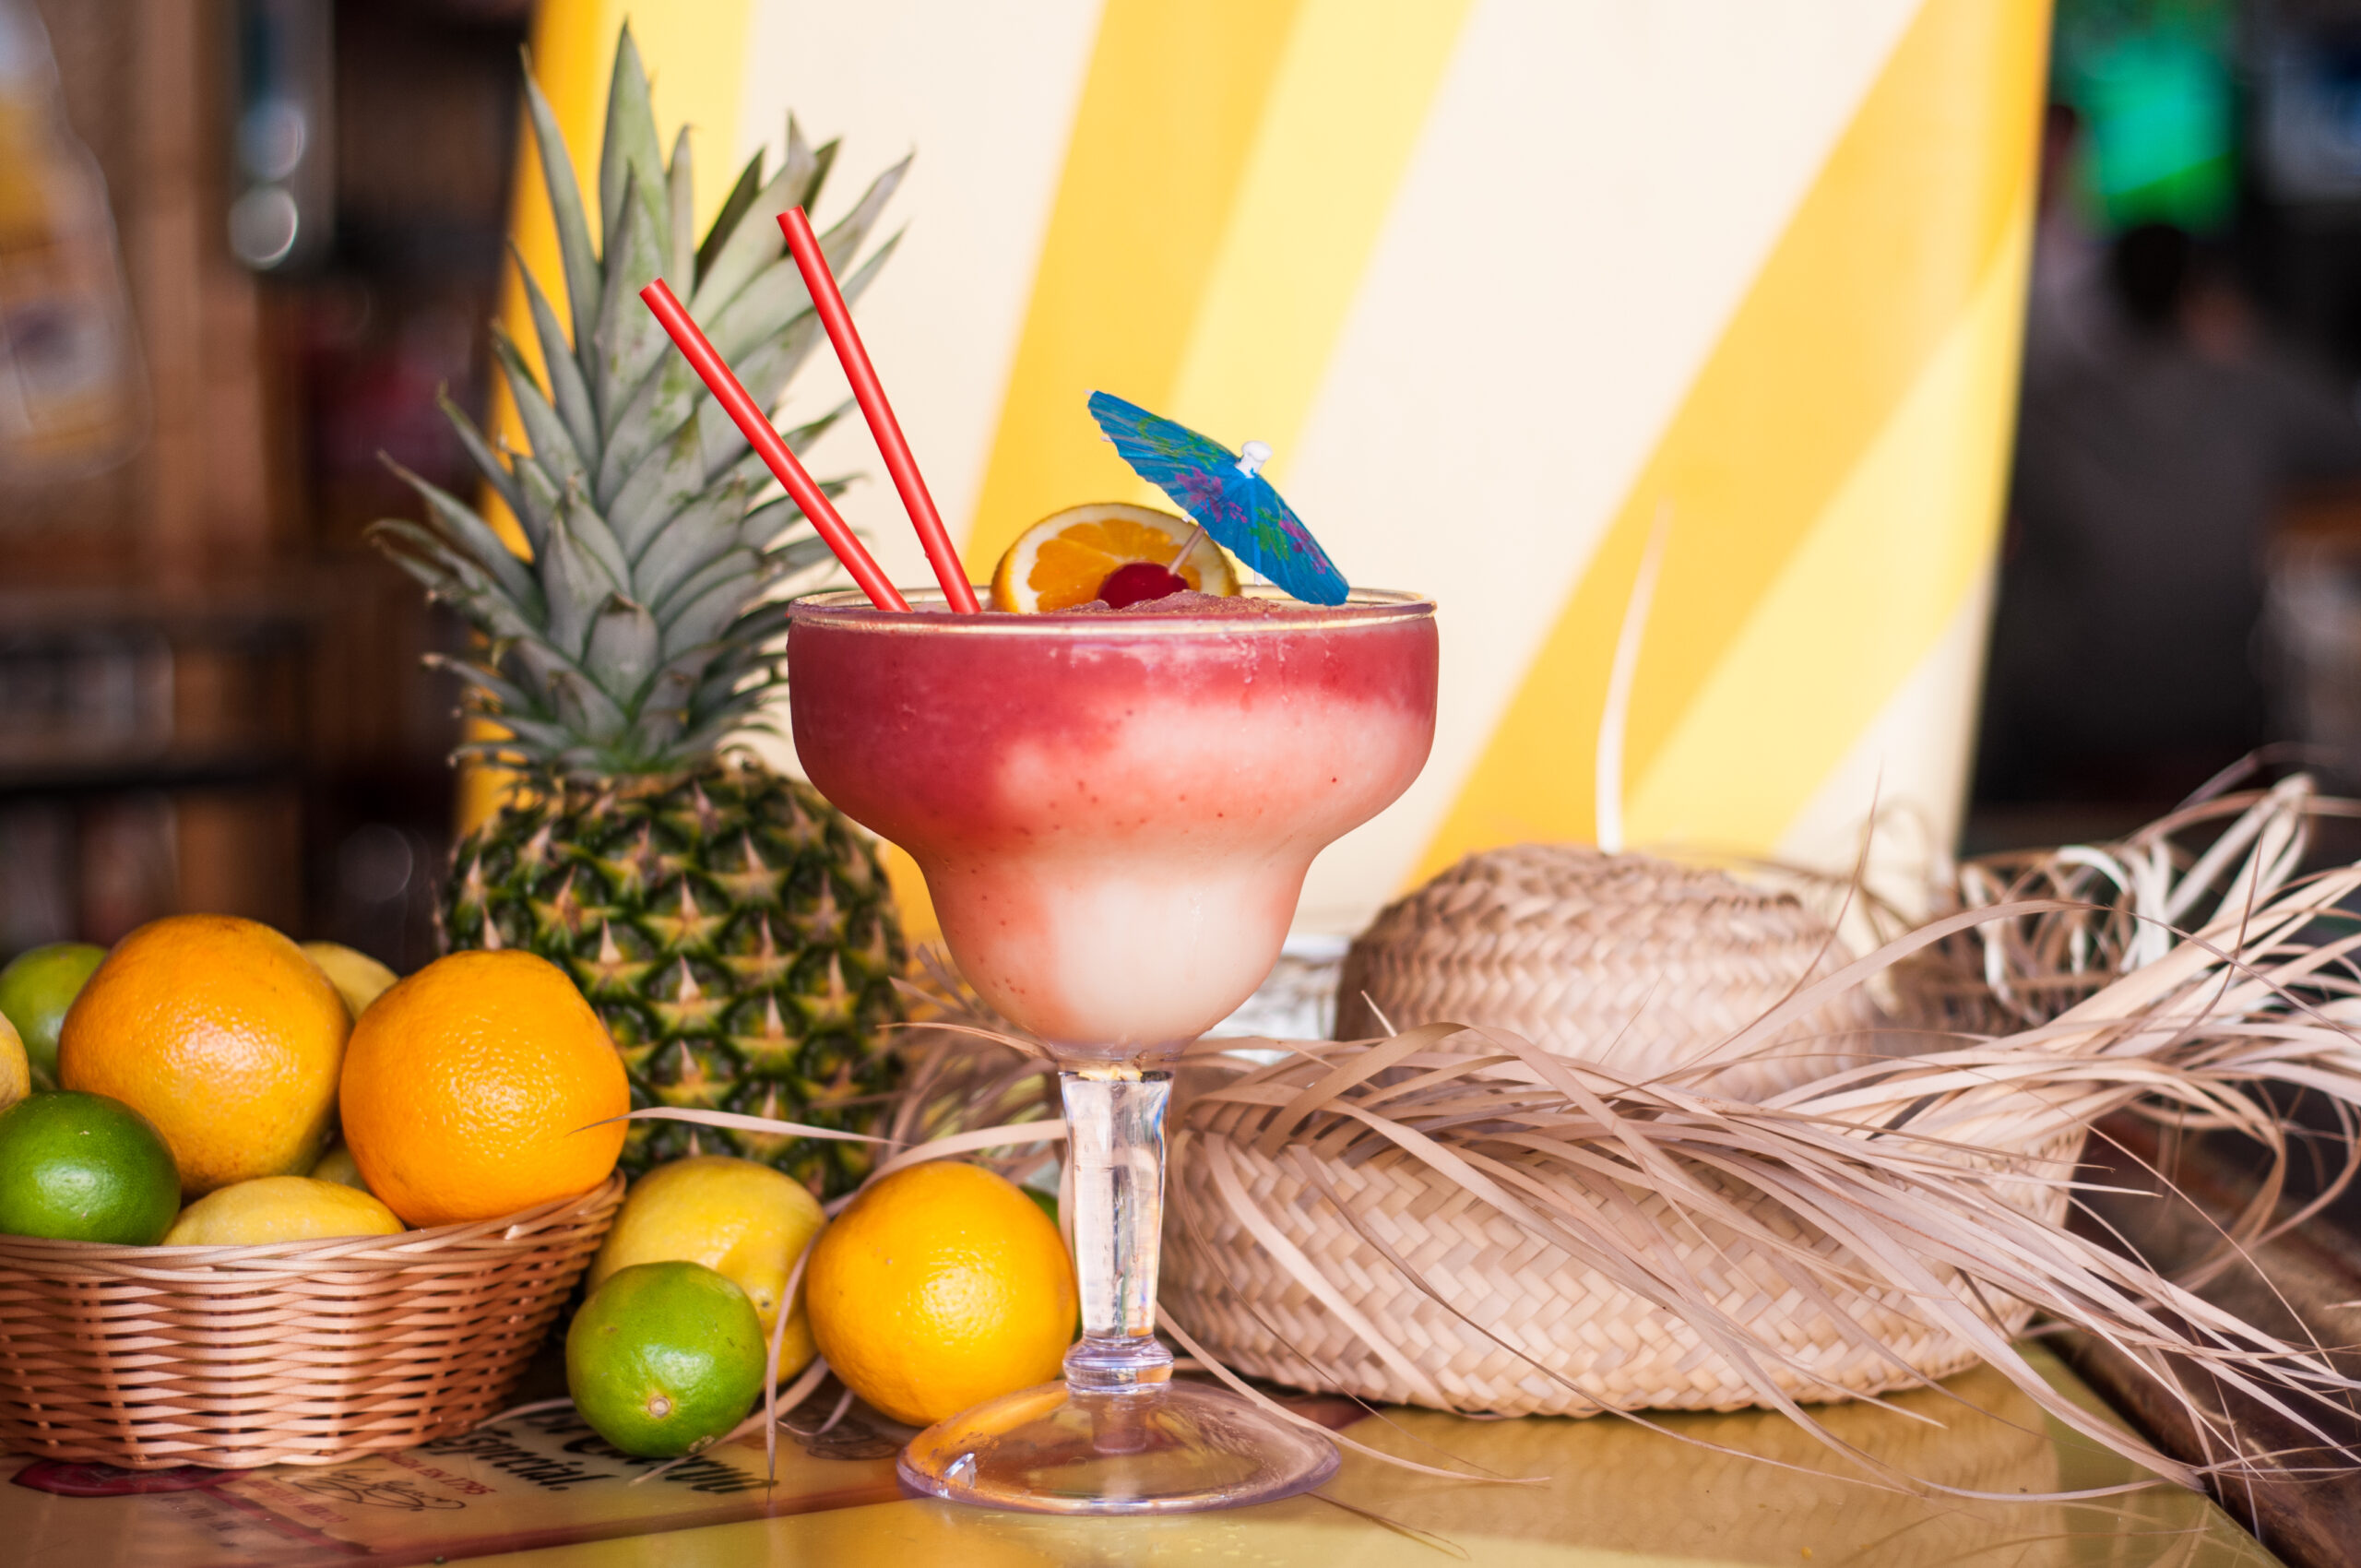 Red and peach Mega margarita surrounded by fruit and a sombrero